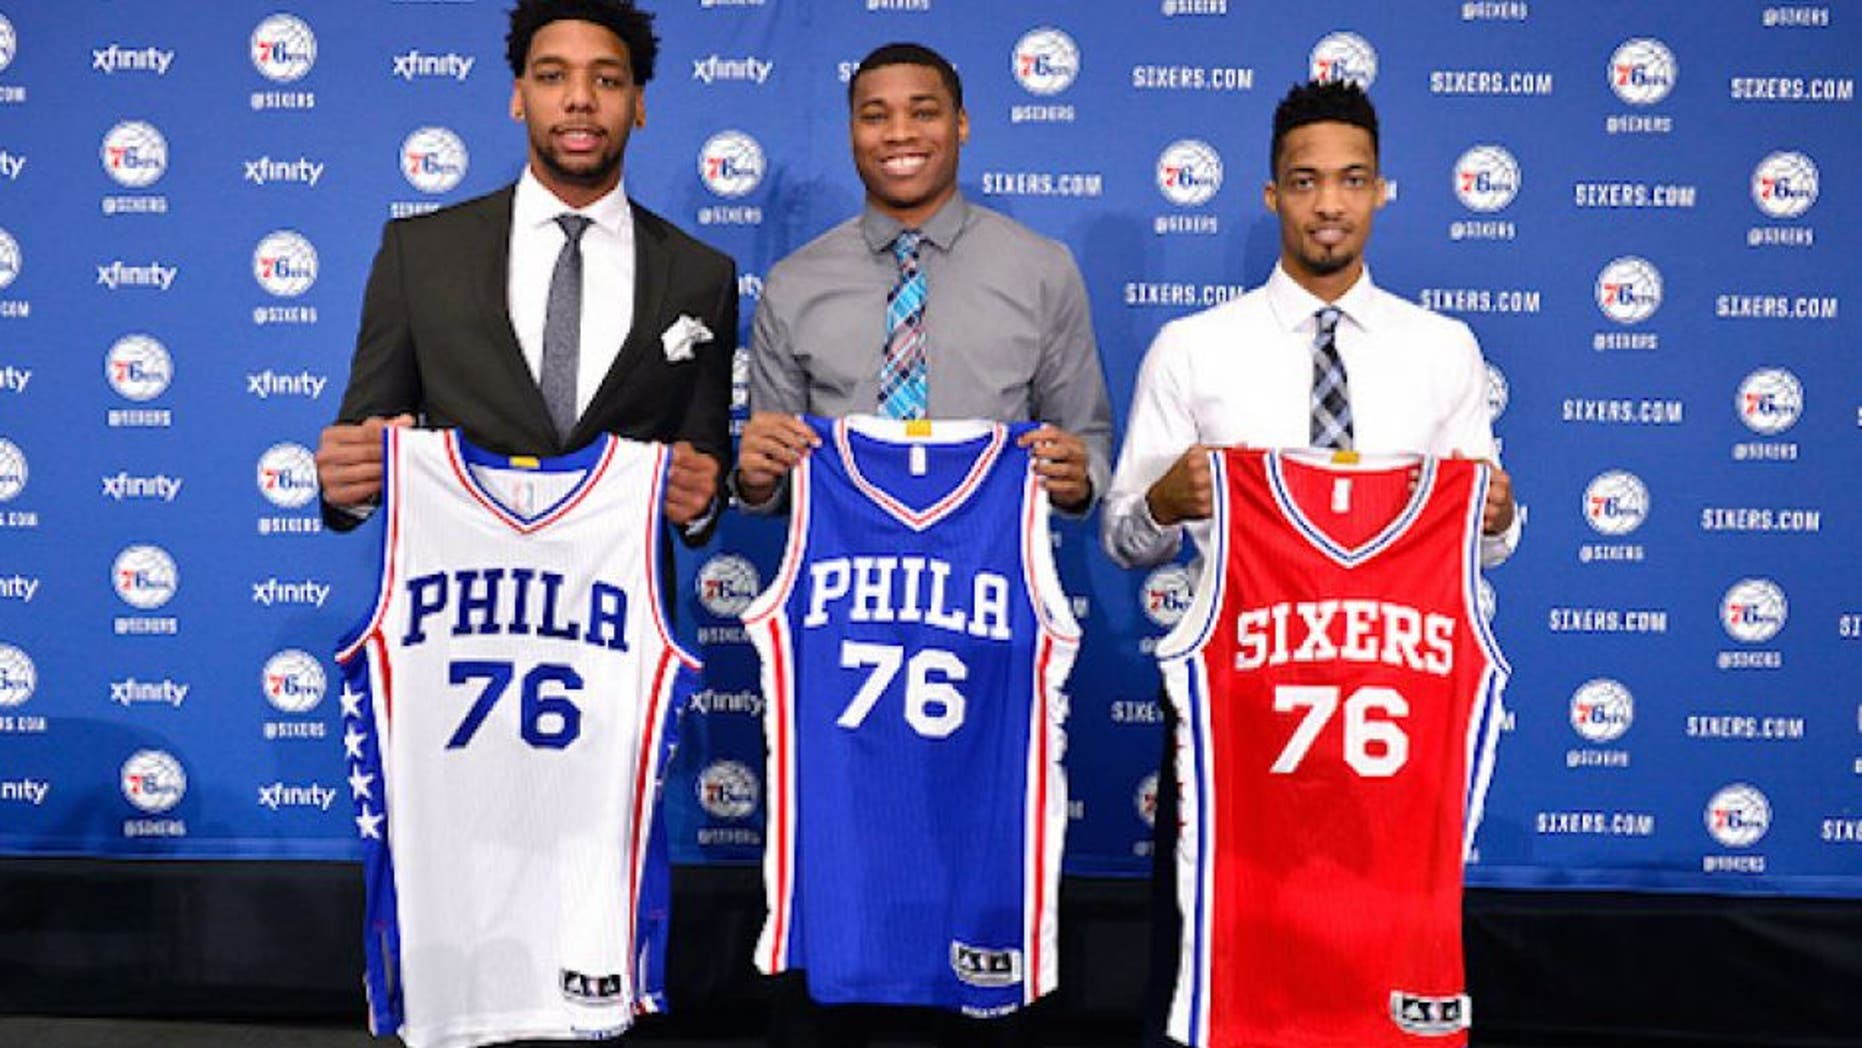 c72ef03618a1 The Philadelphia 76ers are the first NBA team with a jersey ad deal ...